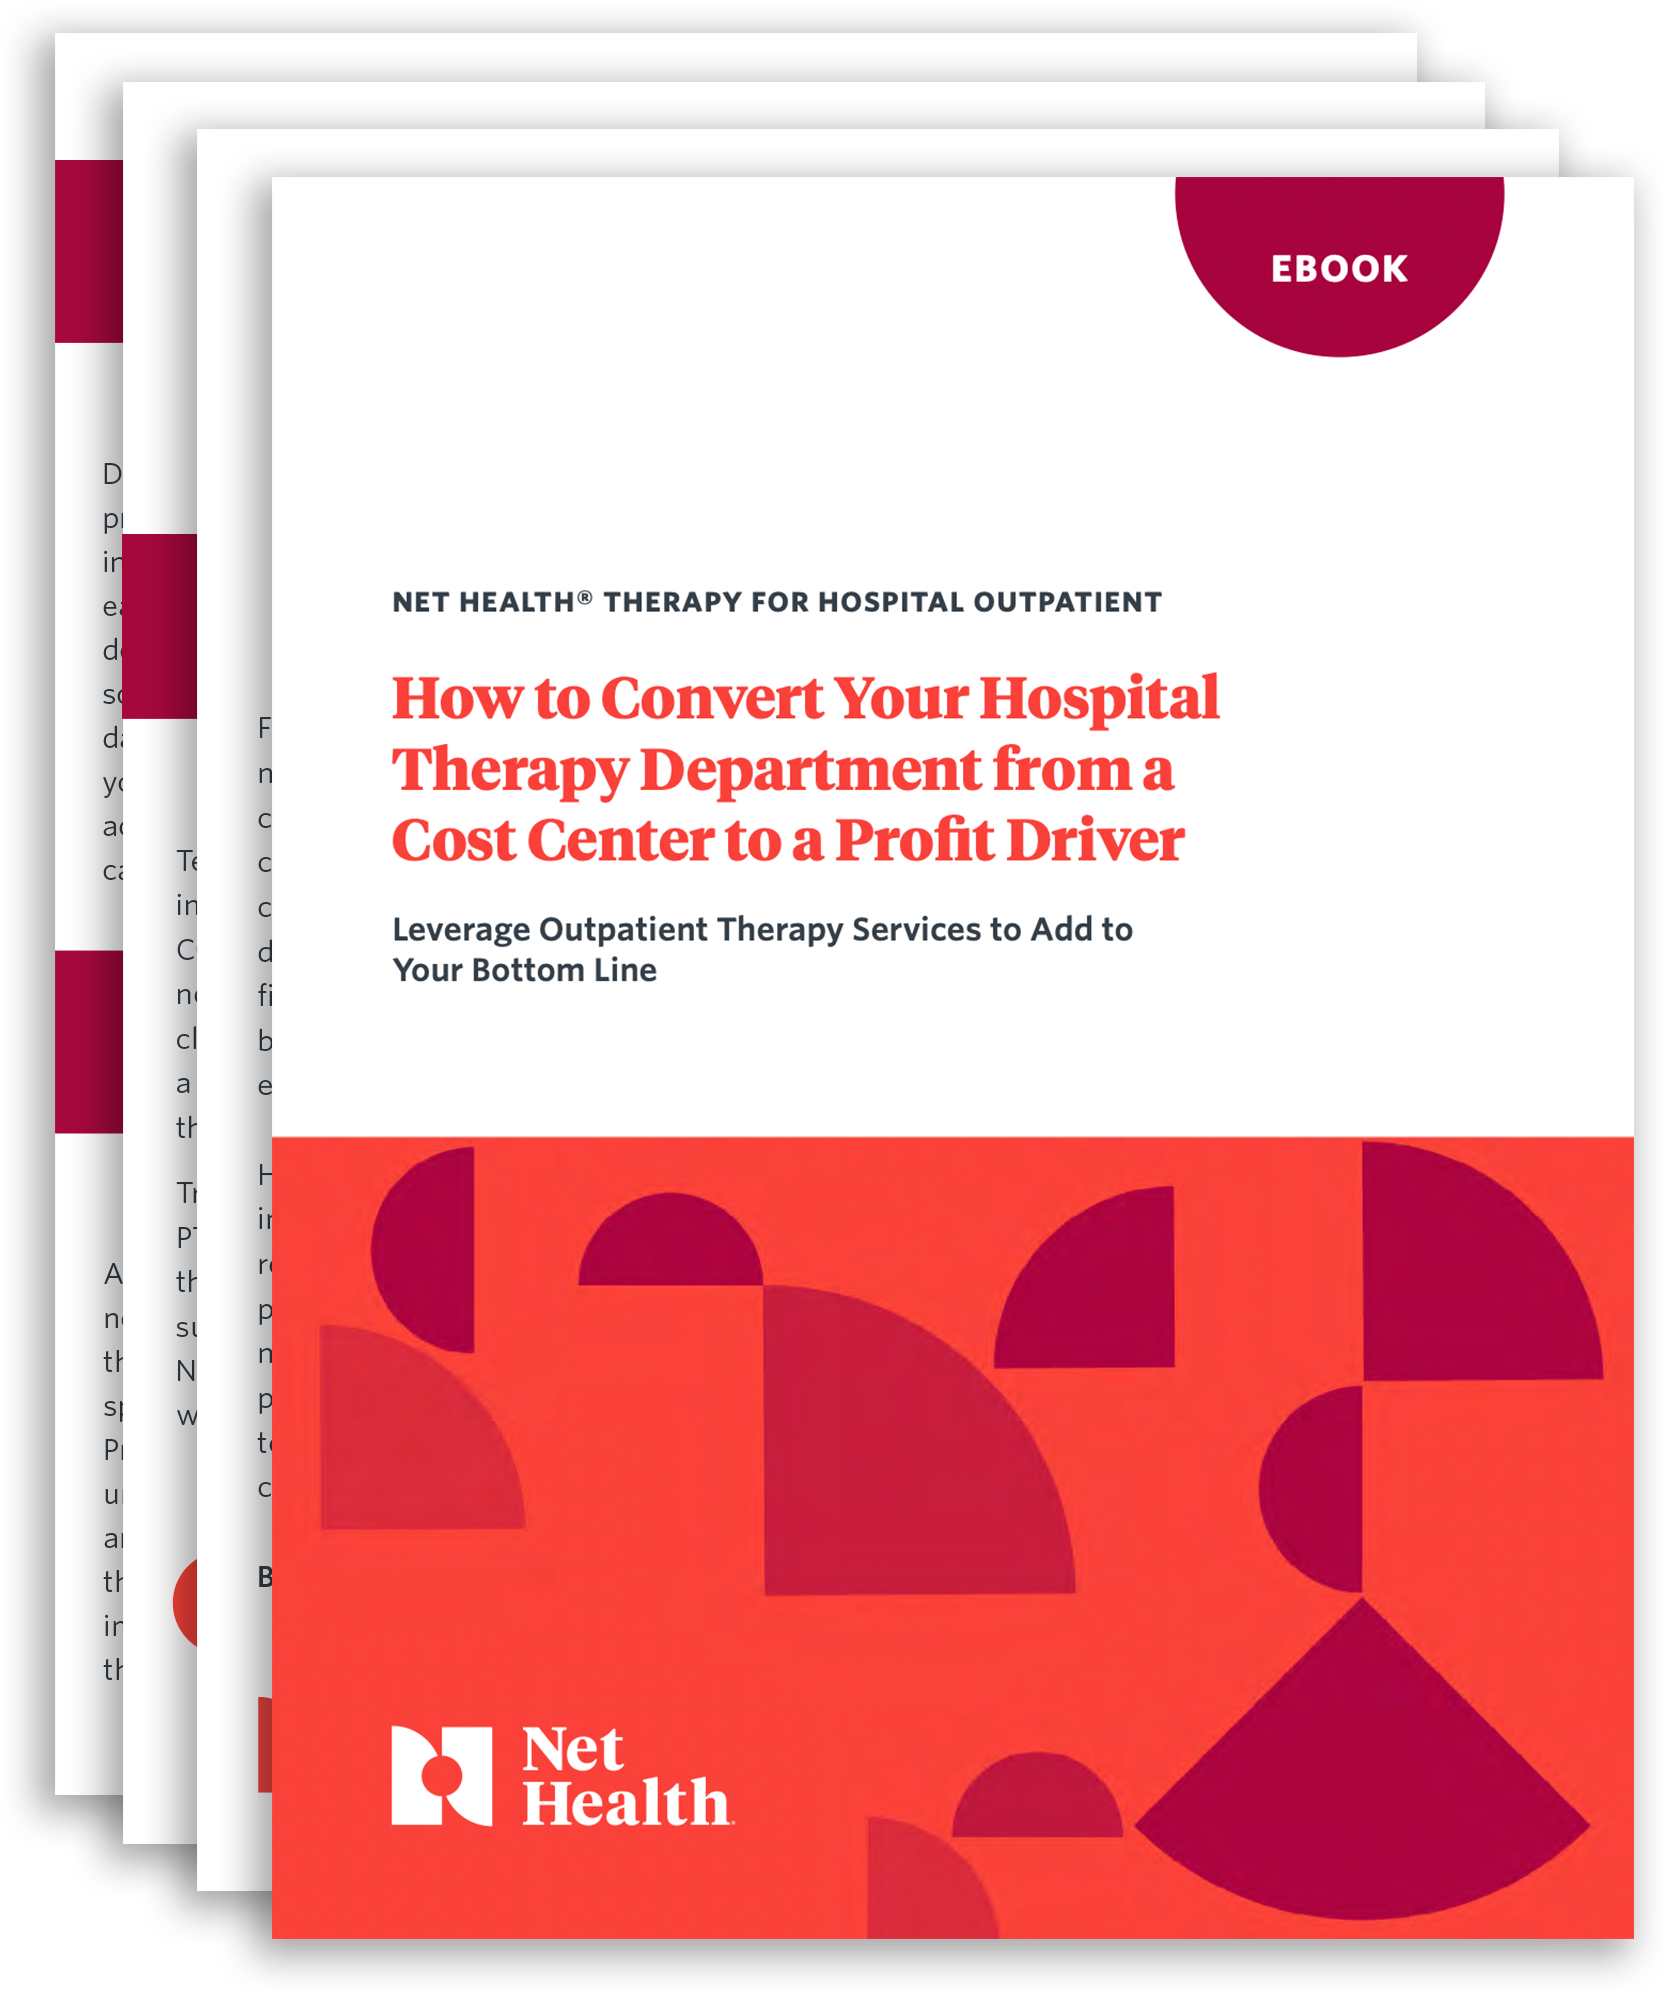 How to Convert Your Hospital Therapy Department from a Cost Center to a Profit Driver